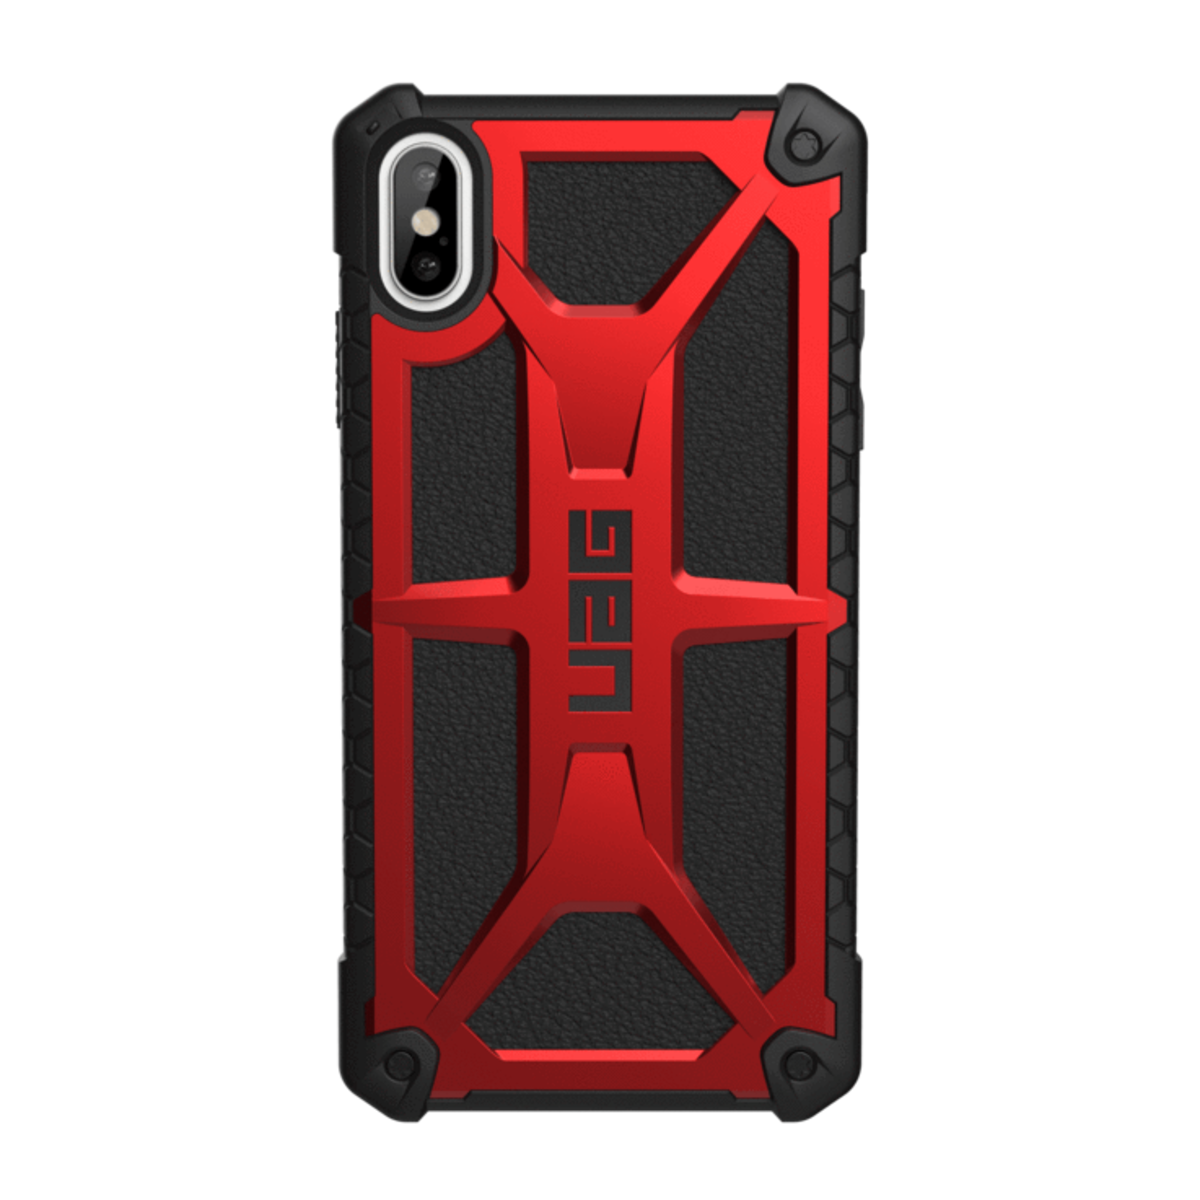 USA military standards Apple Iphone Xs MAX Cases MONARCH Crimson